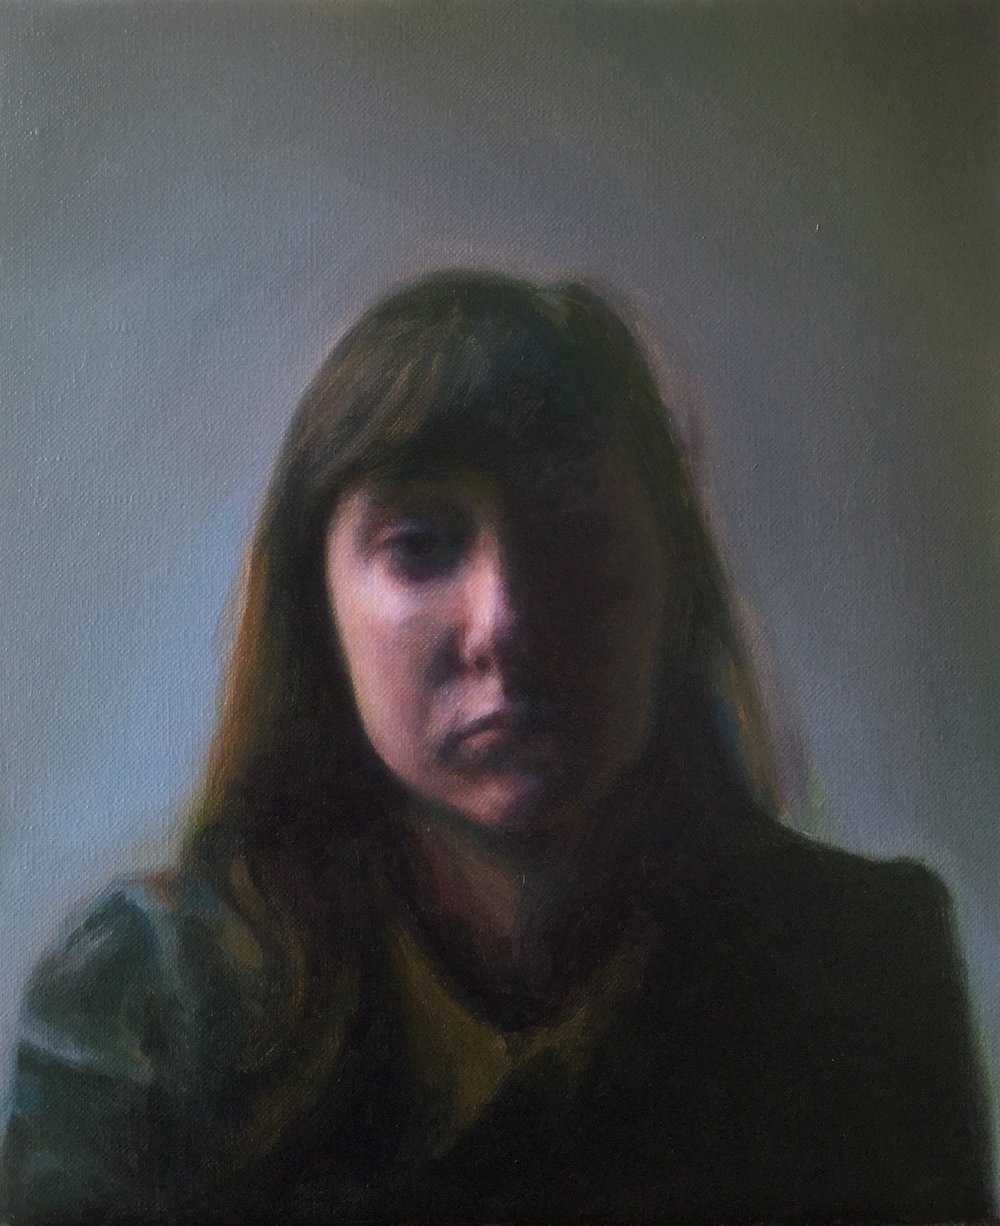 James Bonnici, Sarah Study oil on linen, 26 x 31 cm, available